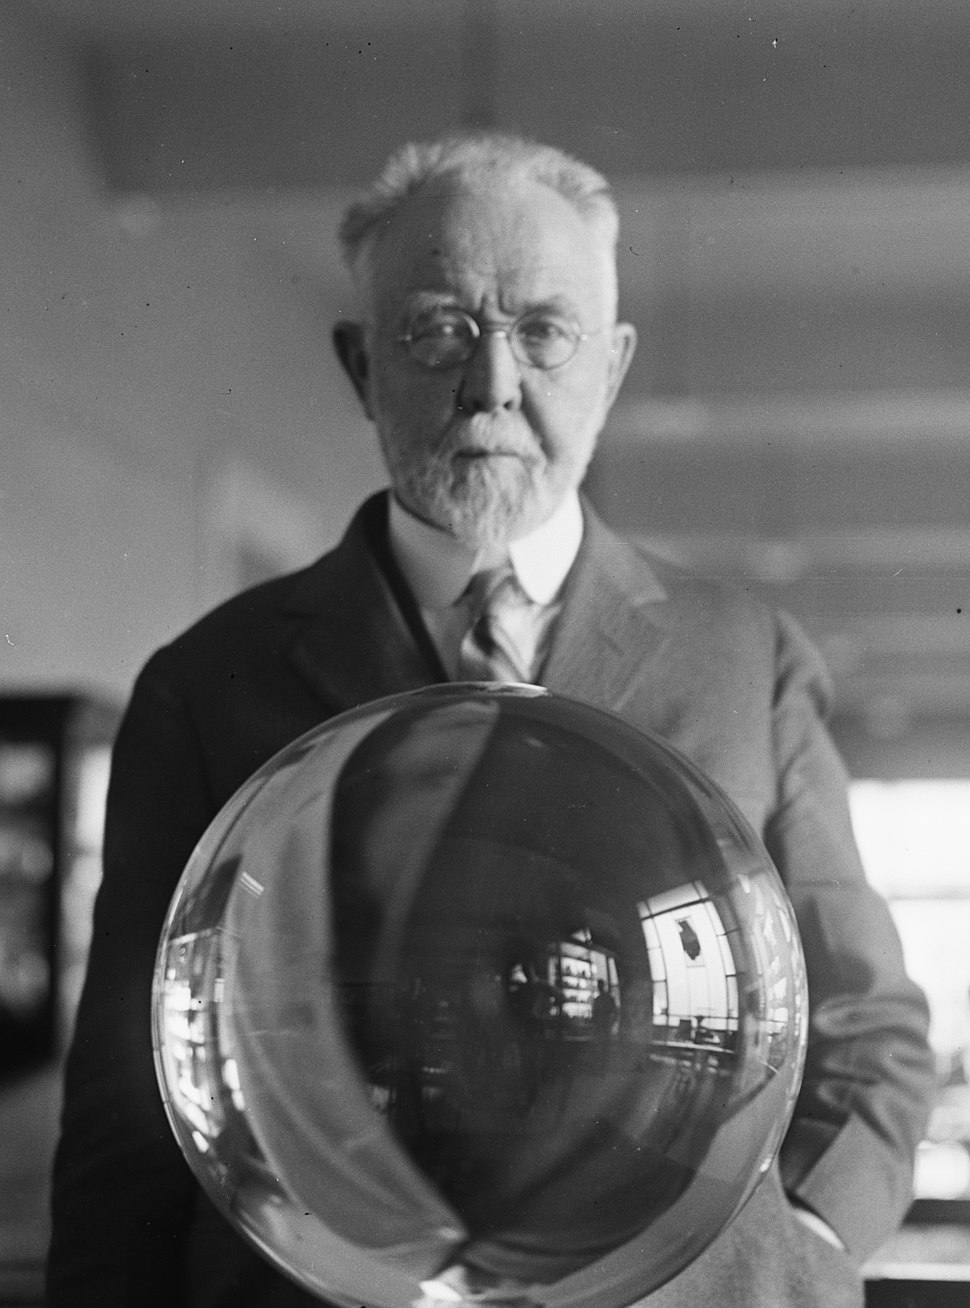 George P. Merrill, head curator of the National Museum, with the largest perfect crystal globe in the world, Washington, D.C. (cropped)